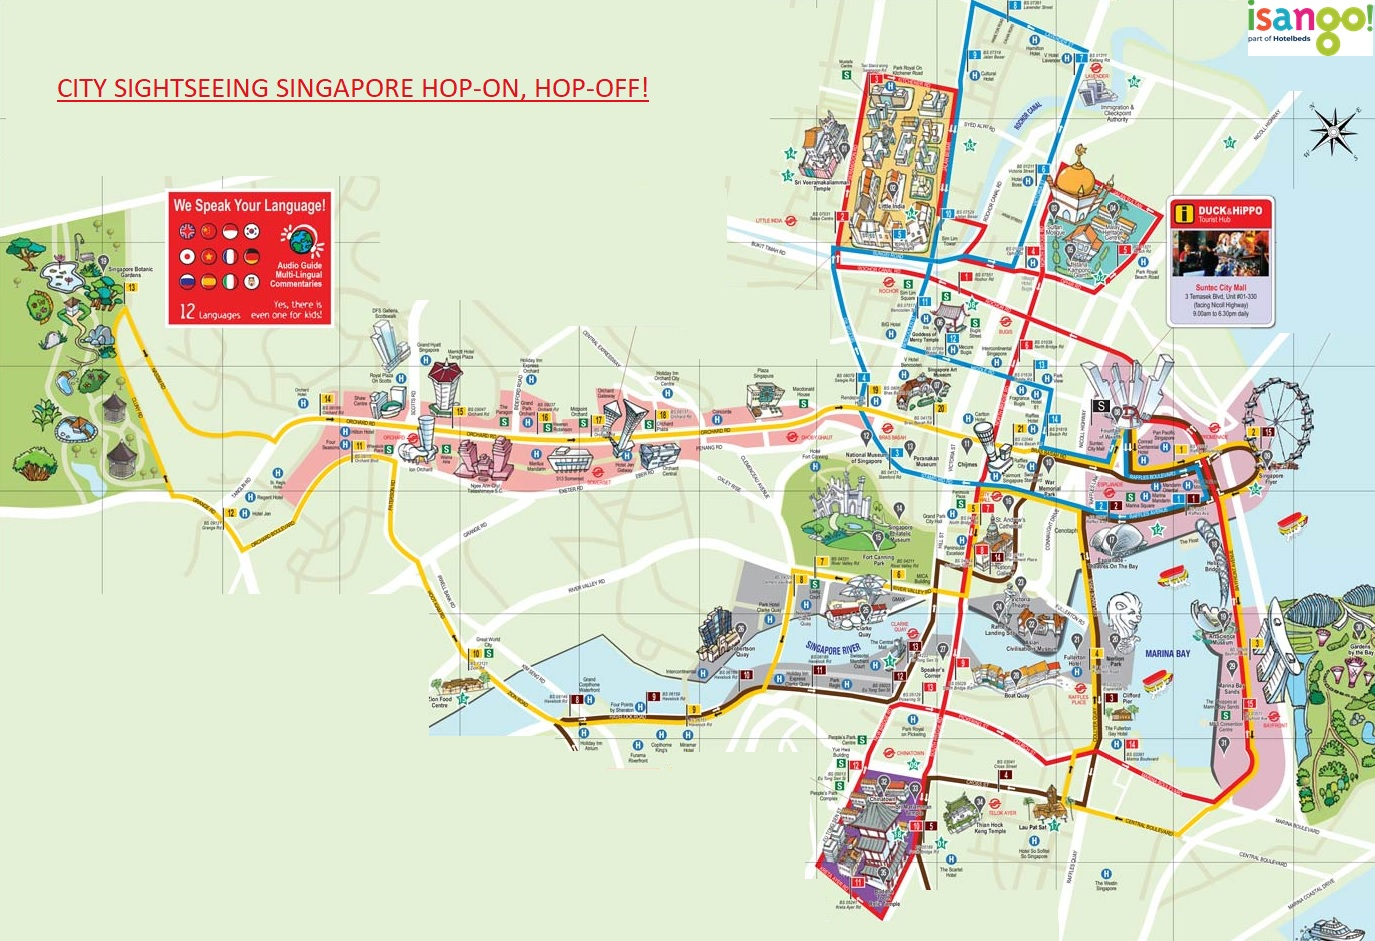 New Zealand Sightseeing Map.City Sightseeing Singapore Hop On Hop Off Bus Tour